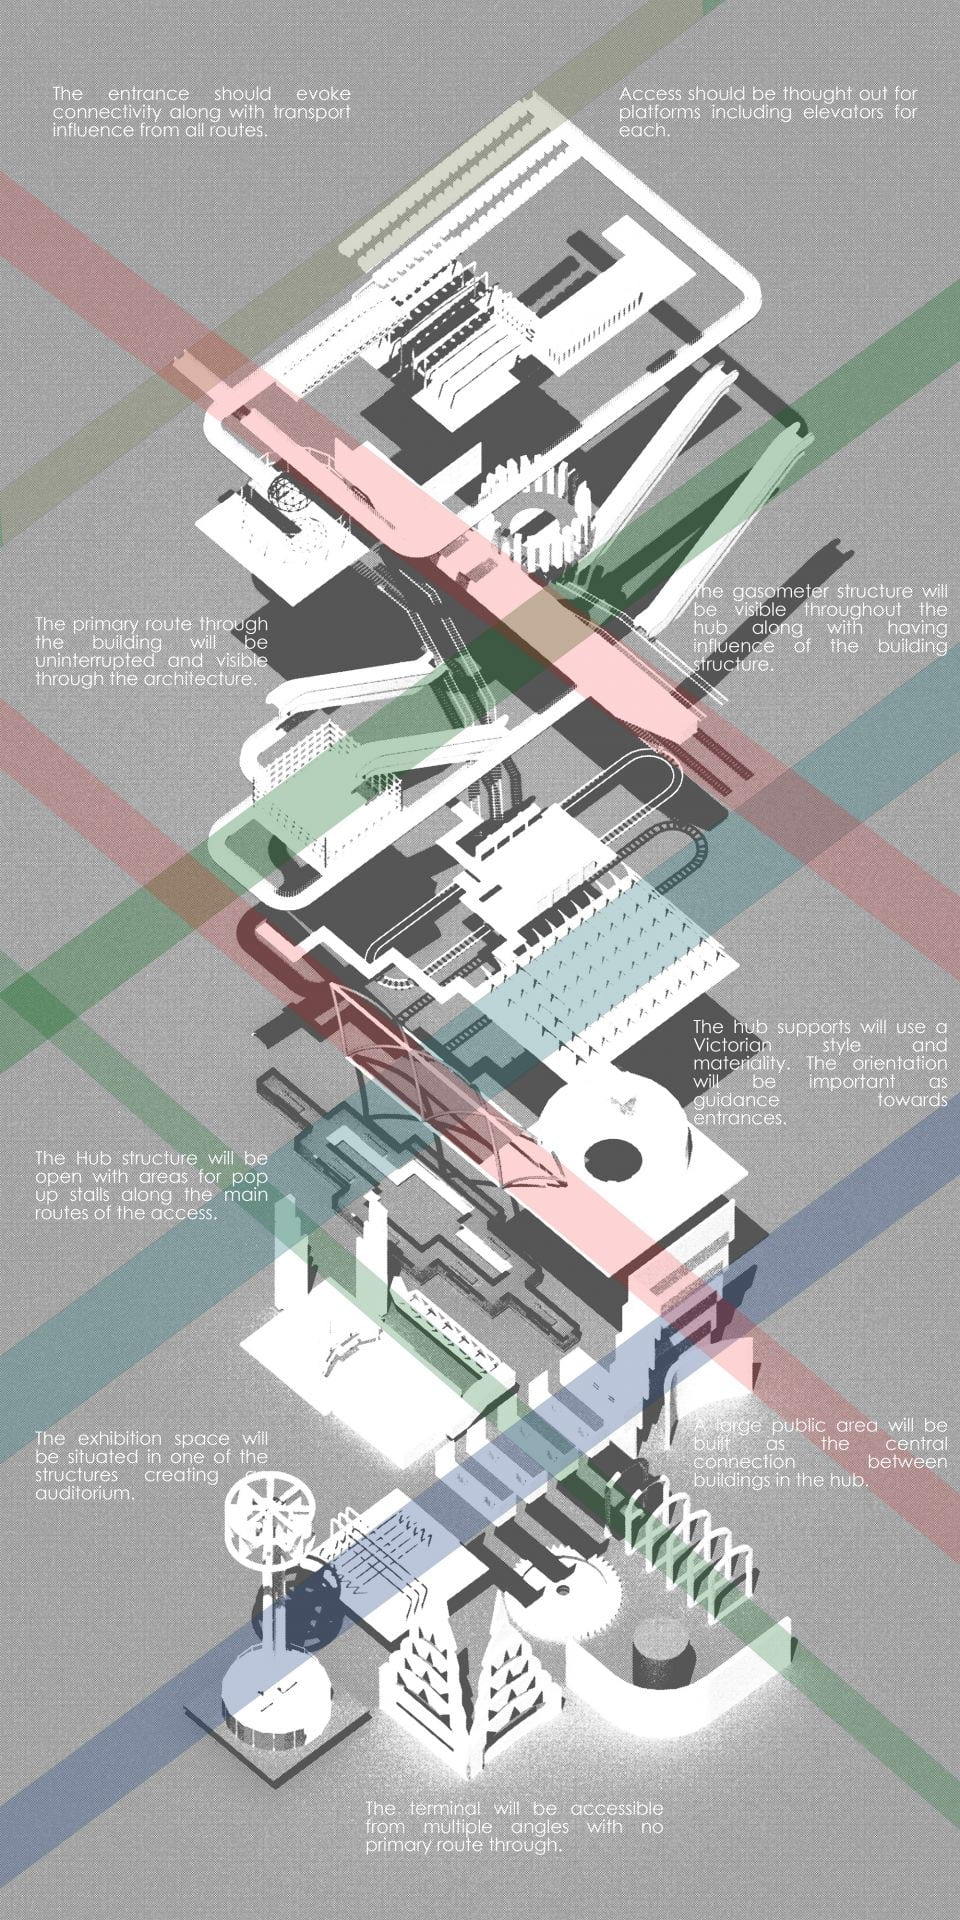 Axonometric diagram showing the concept behind the transit hub design.